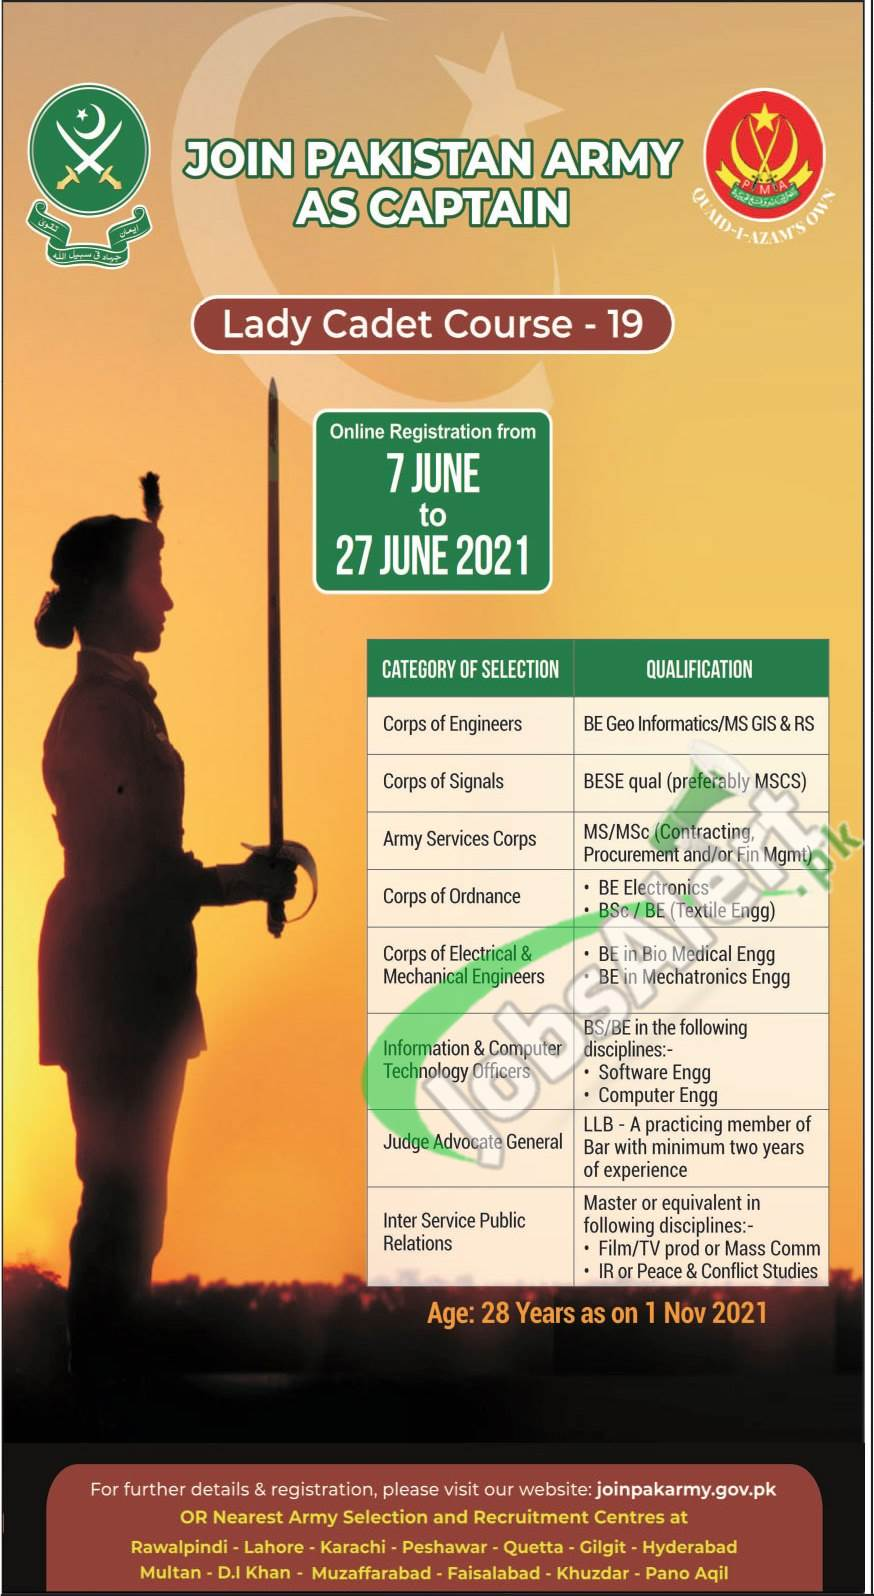 Join Pakistan Army through Lady Cadet Course